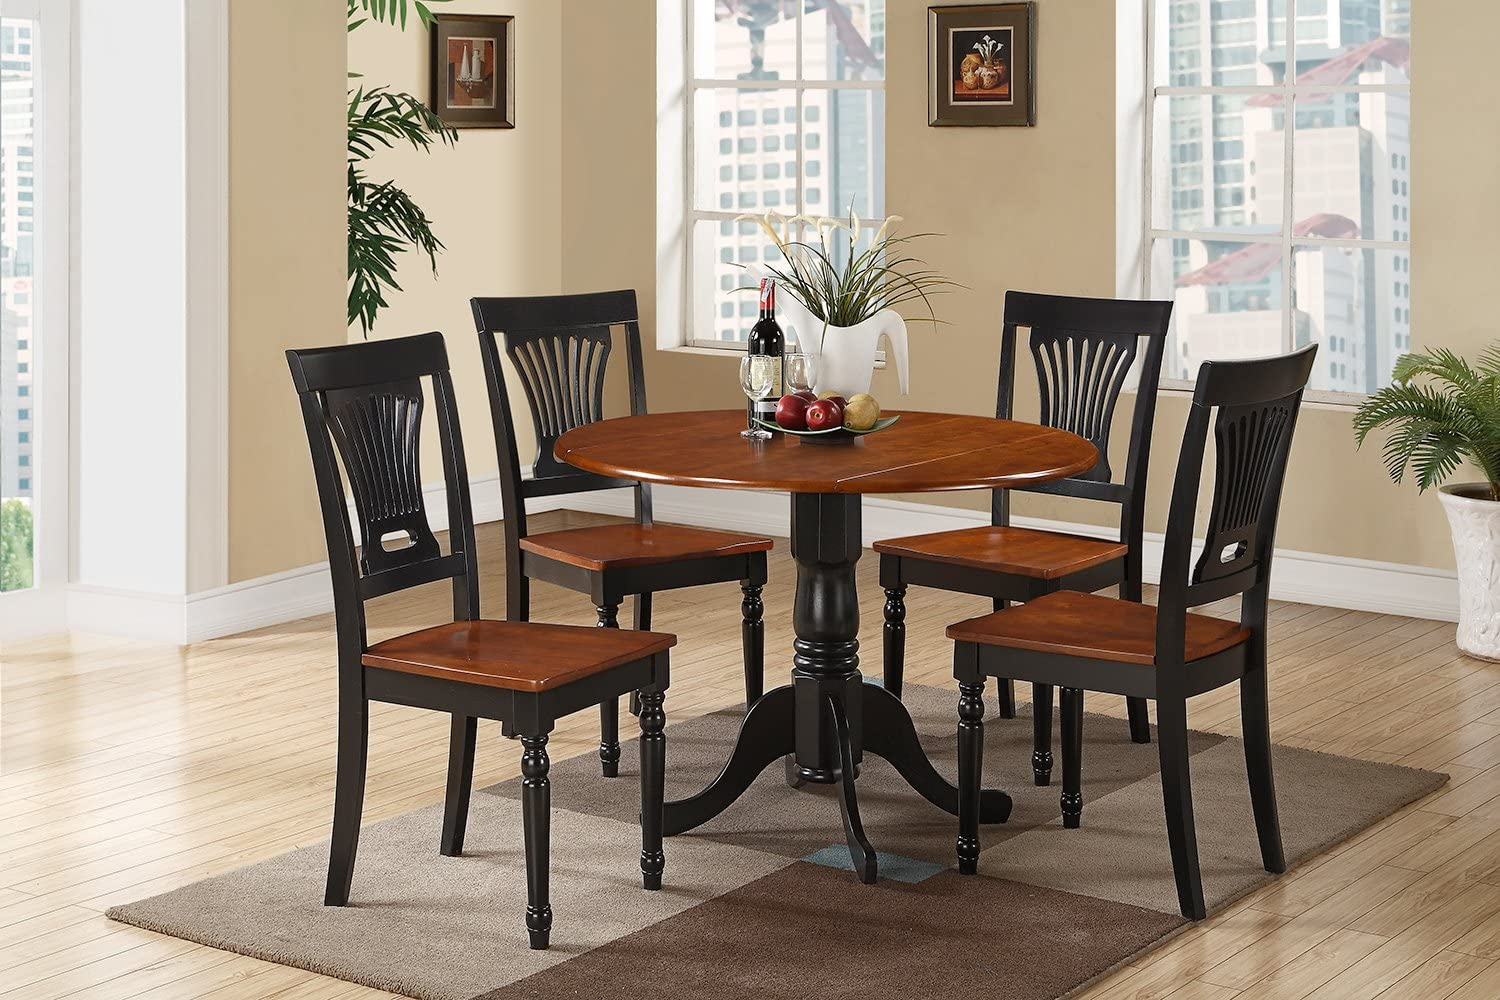 9 Pc small Kitchen Table and Chairs set Table and 9 dinette Chairs